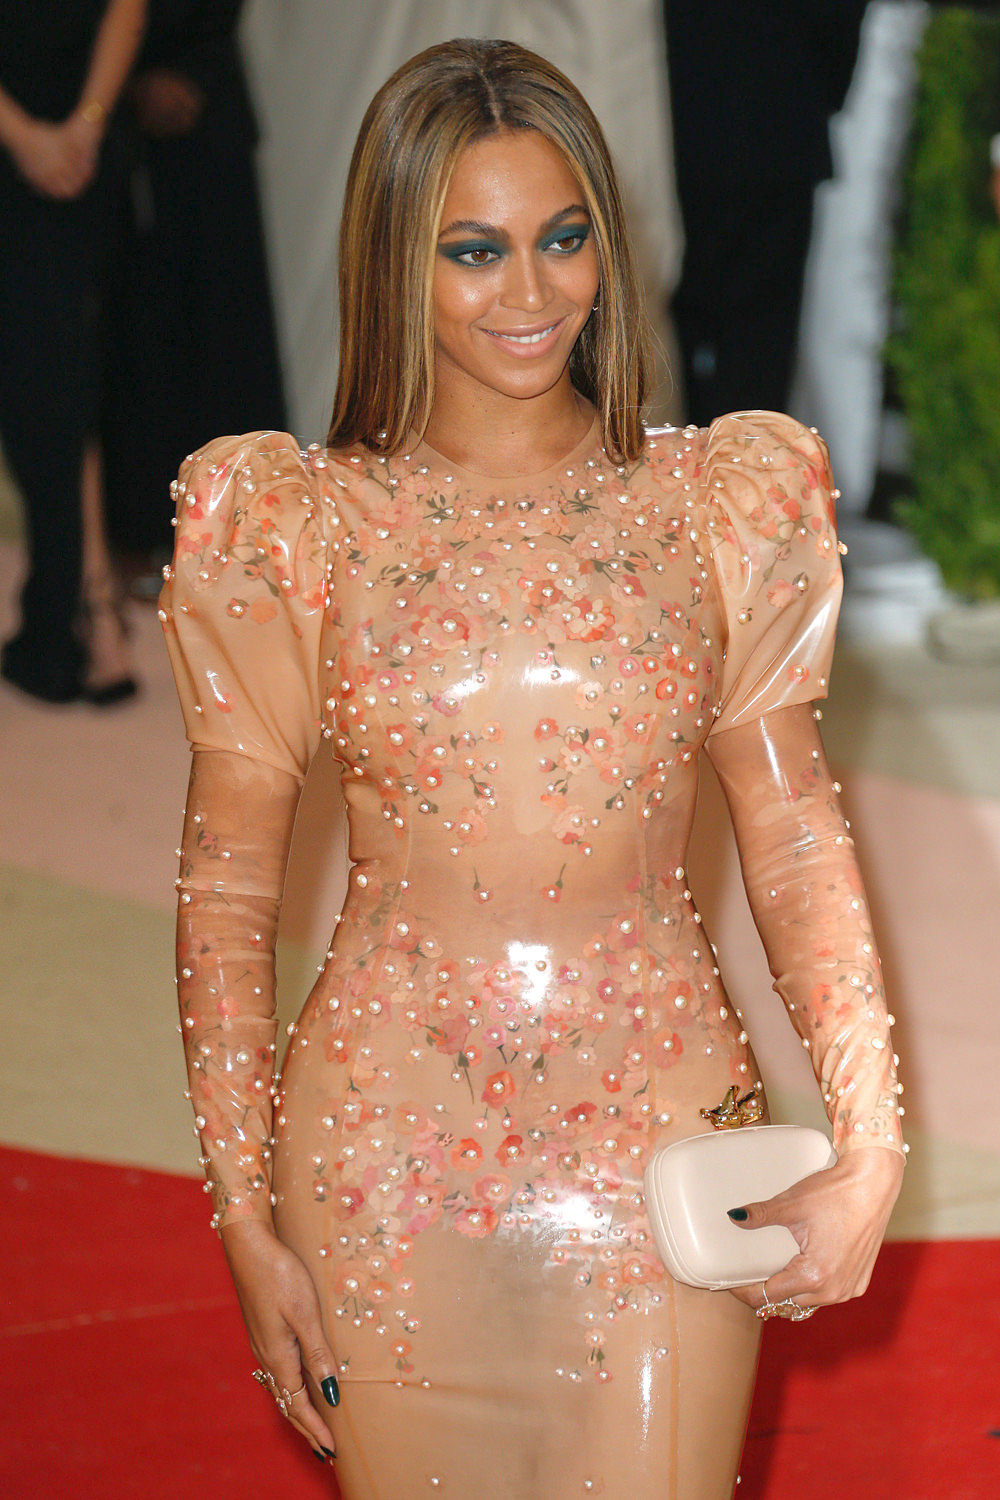 Beyonce-Met-Gala-2016-Red-Carpet-Fashion-Givenchy-Couture-Tom-Lorenzo-Site (1)